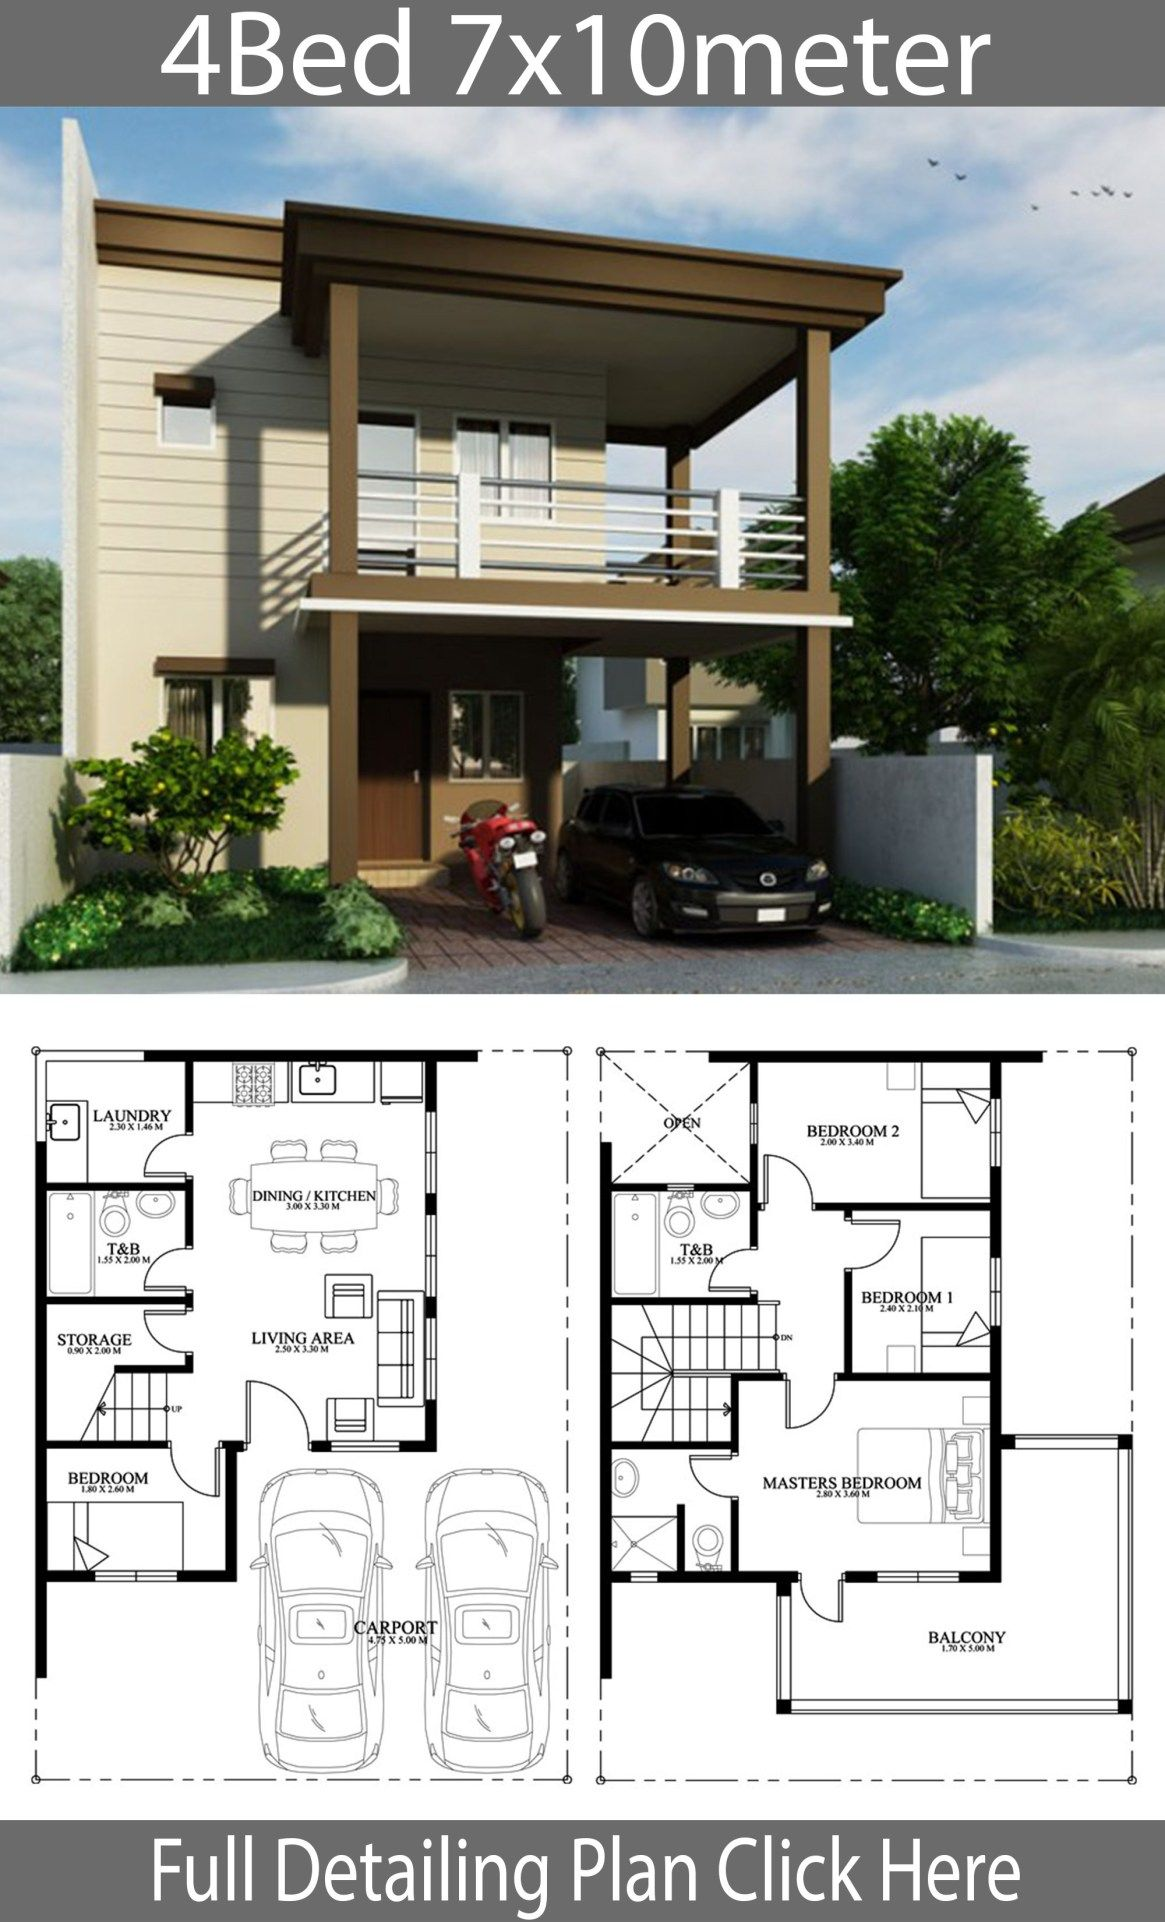 Home Design Plan 7x10m With 4 Bedrooms Home Design With Plansearch Home Design Plans House Designs Exterior Home Building Design